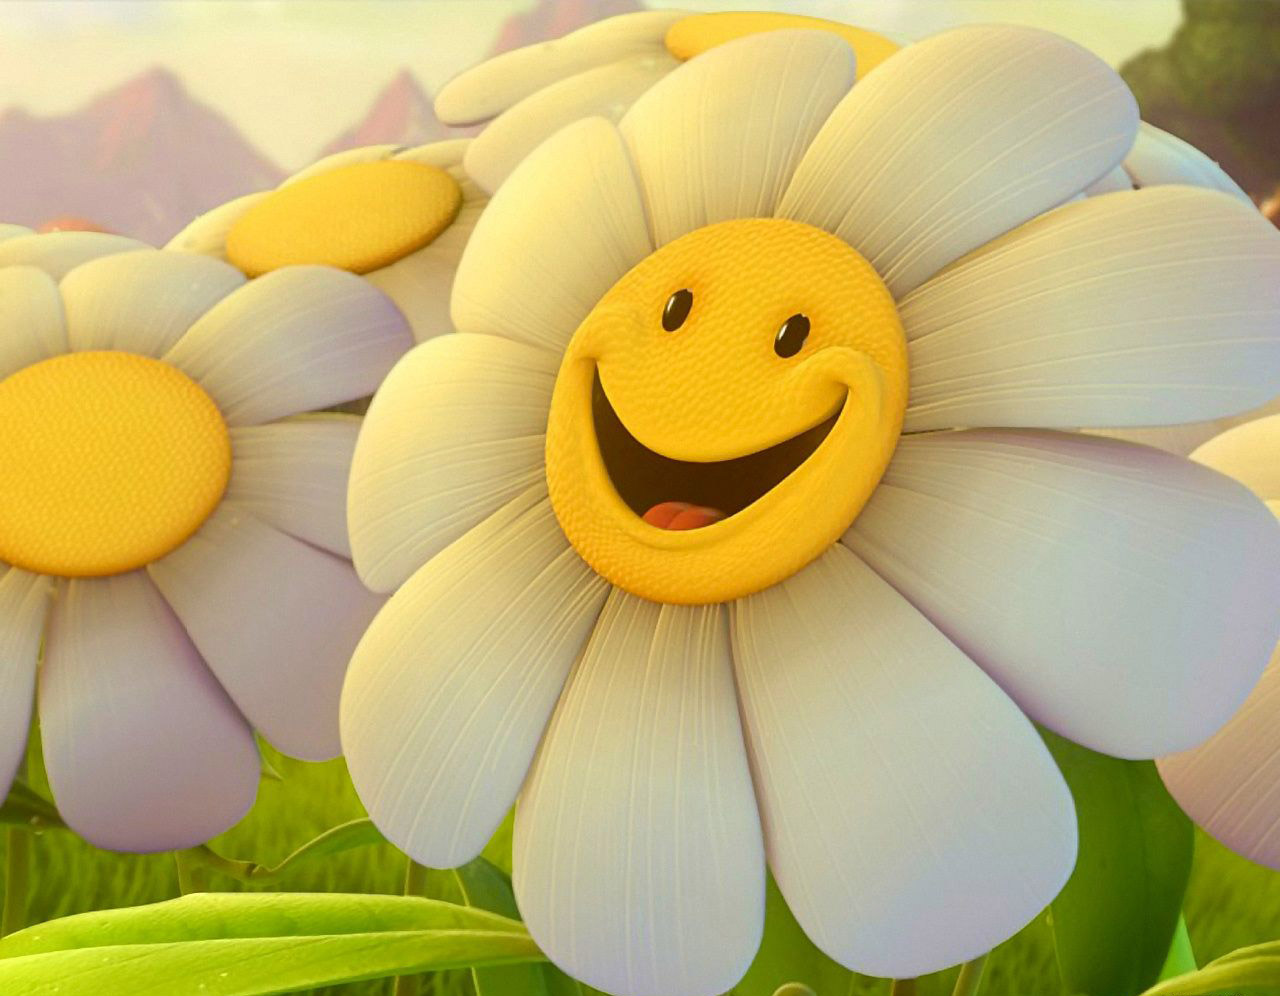 http://1.bp.blogspot.com/-wUpWMNk2FLY/UIQjwdlAPXI/AAAAAAAAA34/9vtTmAXbgRk/s1600/3d-pictures-smile-is-cute-flowers.jpg